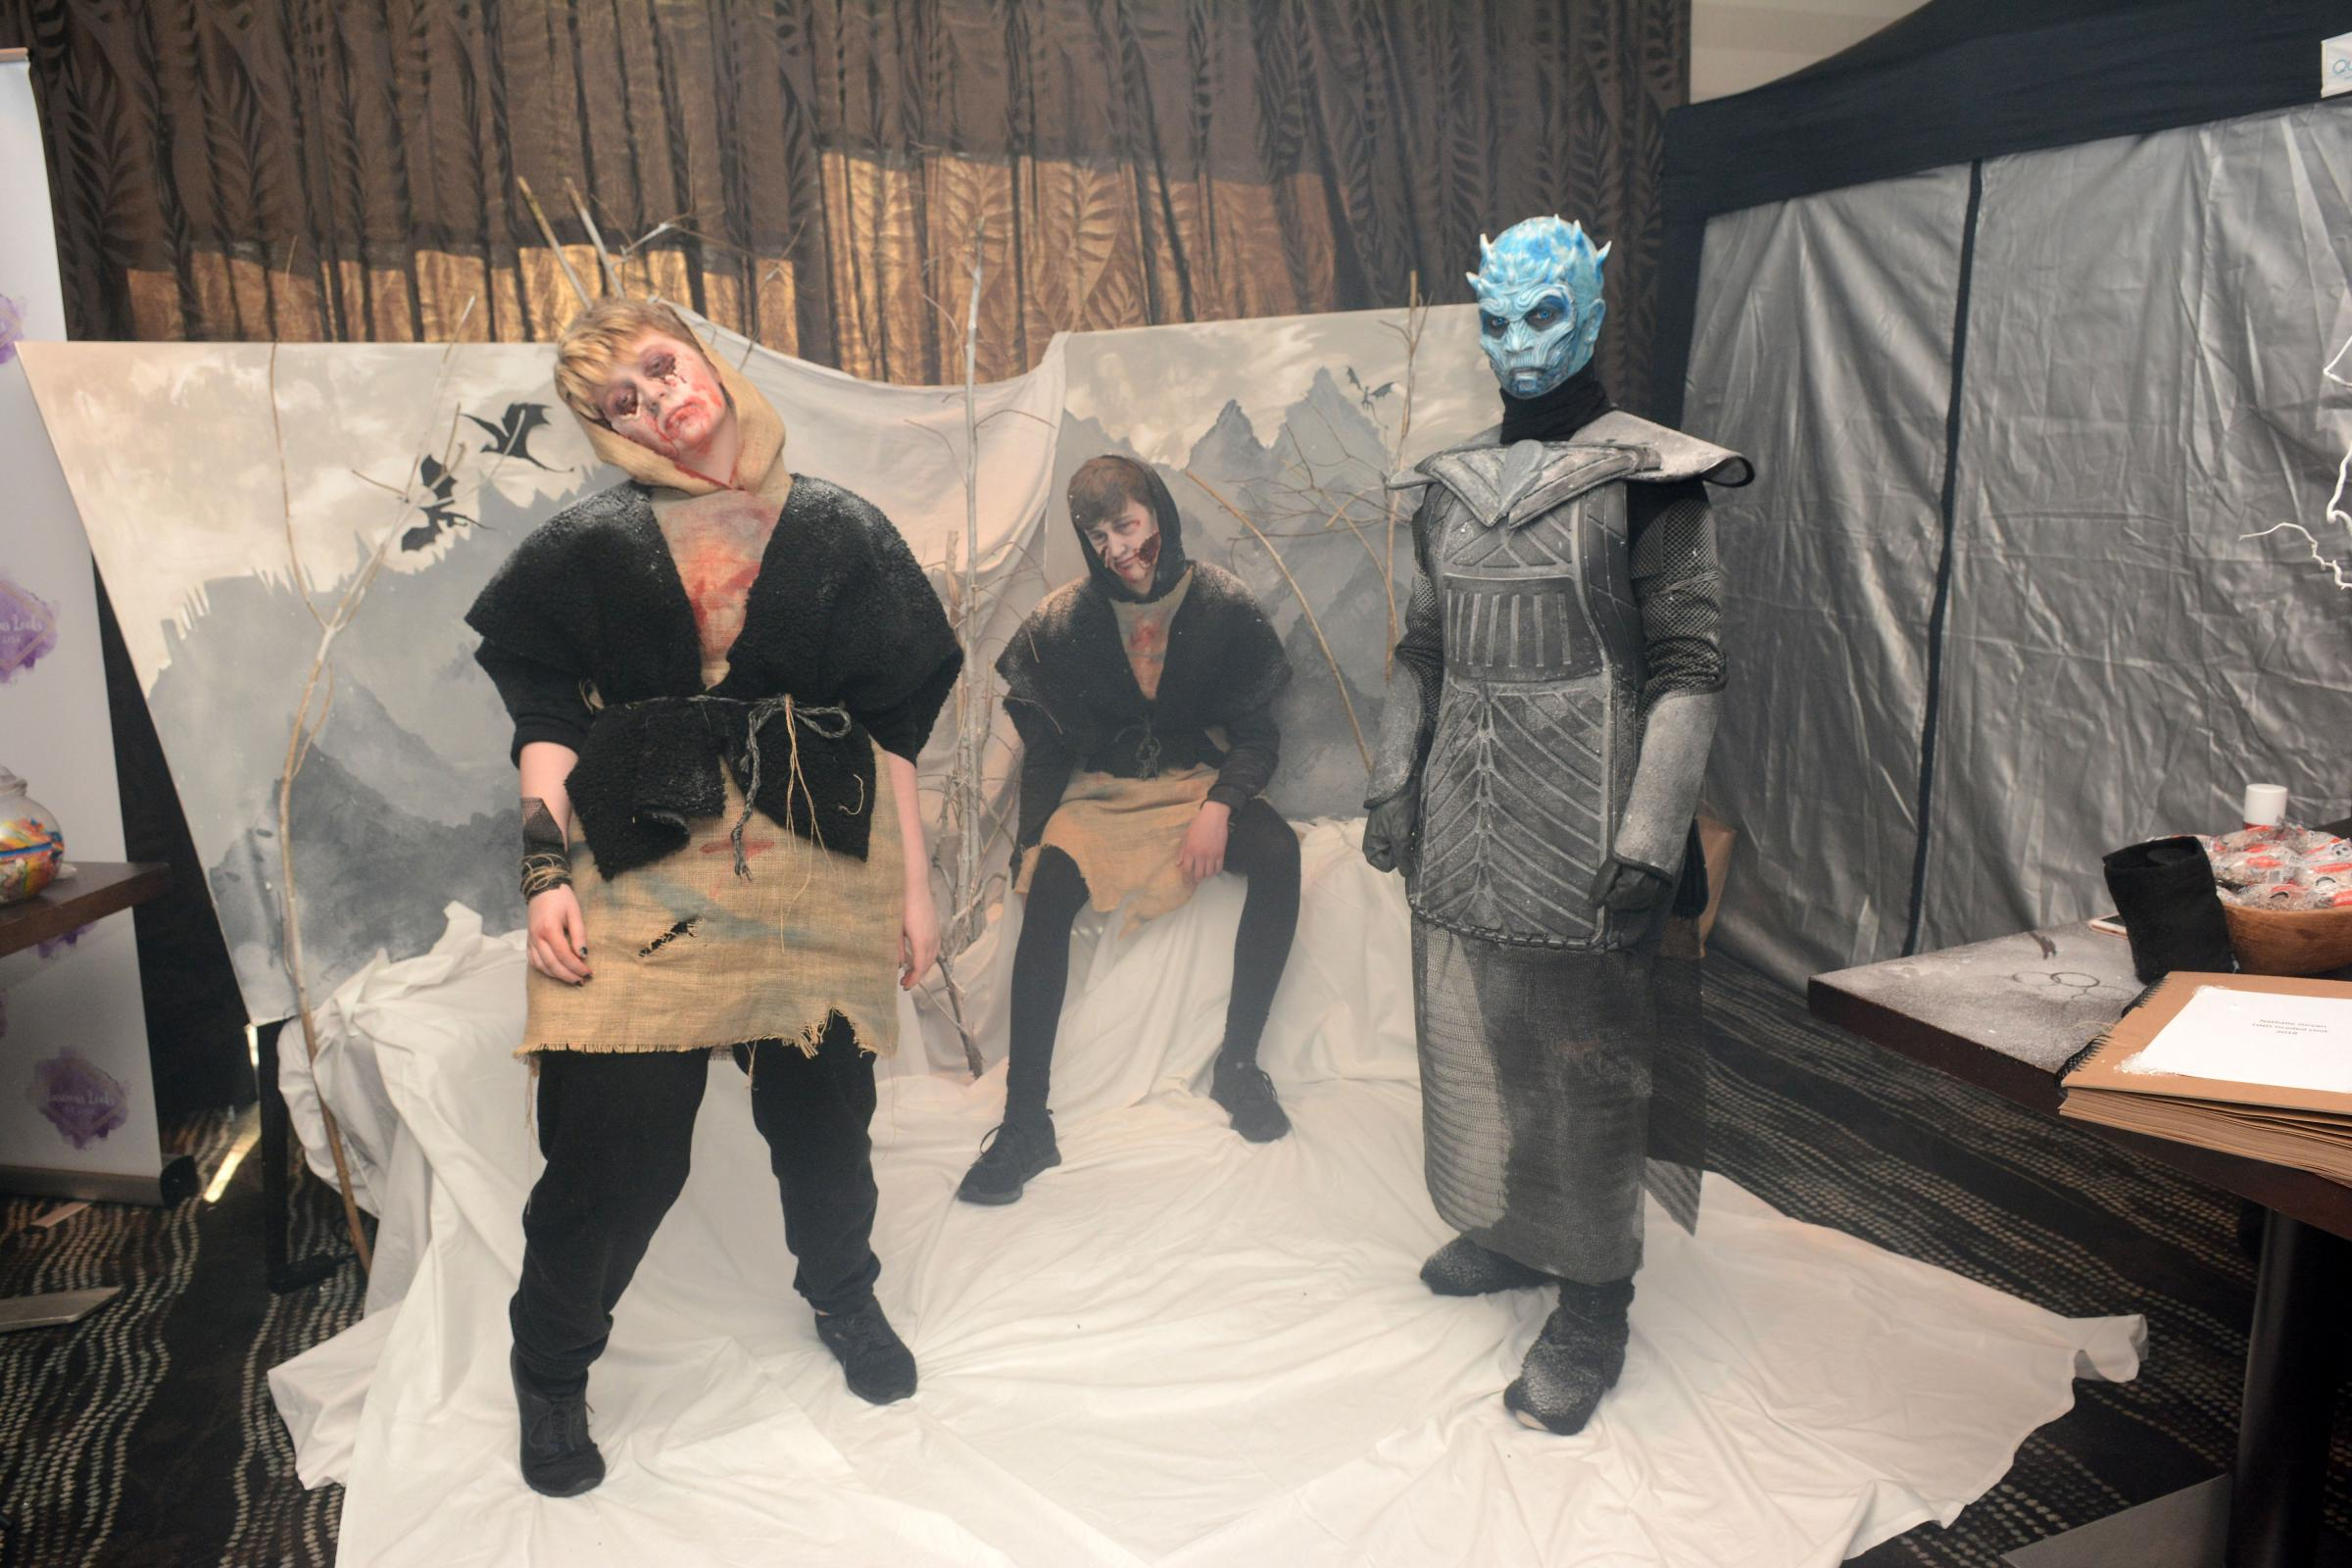 Horror creations shown off within Prestwick hotel